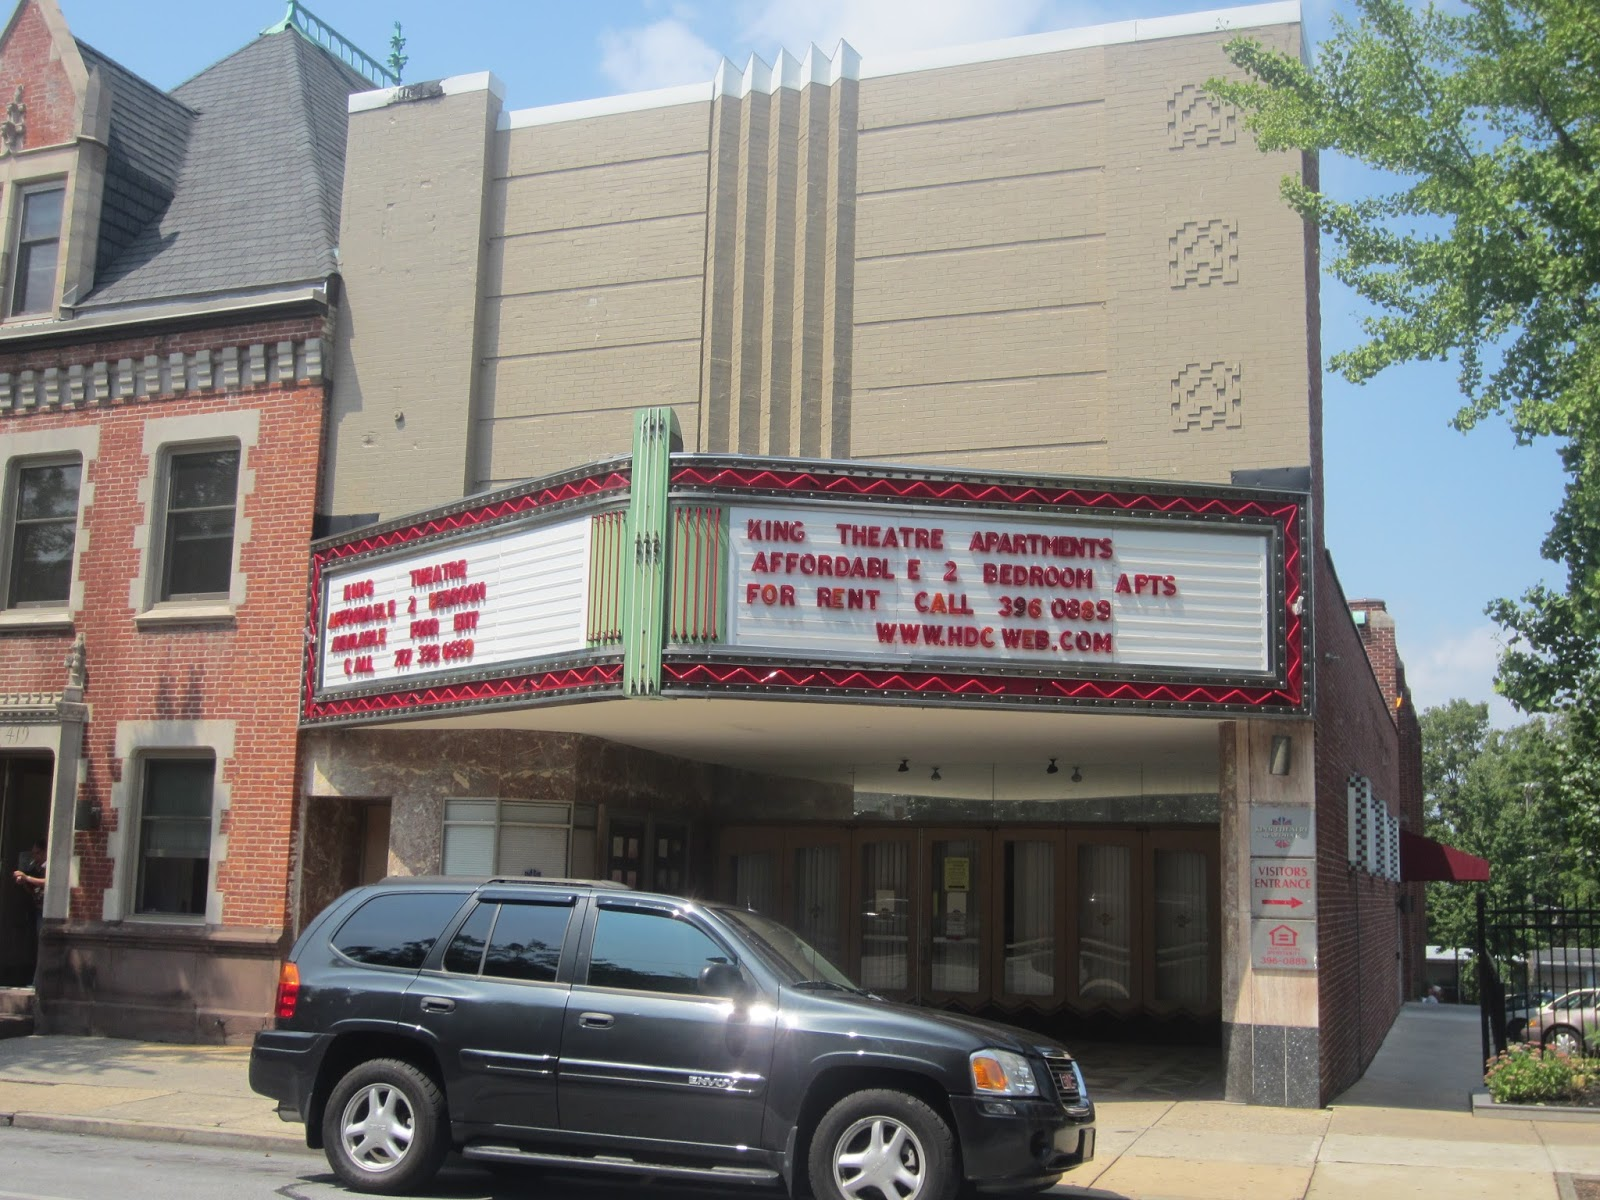 Movie Theatres in Lancaster, PA. Not all of Lancaster County is gorgeous farmland and Amish attractions - you can also catch the latest flick in a movie theatre in Lancaster County, PA.